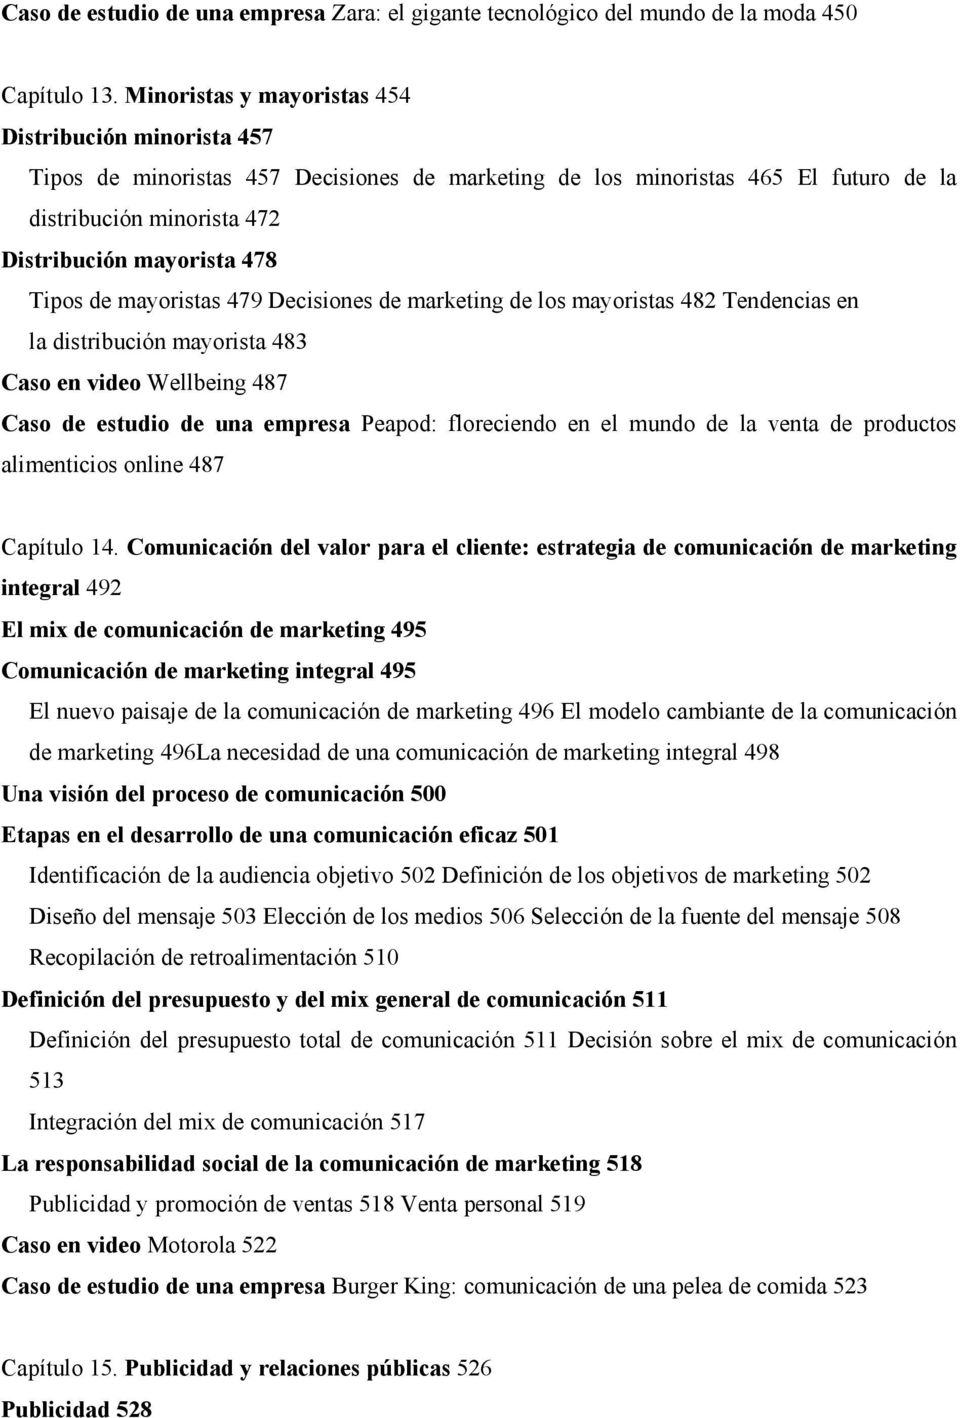 Tipos de mayoristas 479 Decisiones de marketing de los mayoristas 482 Tendencias en la distribución mayorista 483 Caso en video Wellbeing 487 Caso de estudio de una empresa Peapod: floreciendo en el